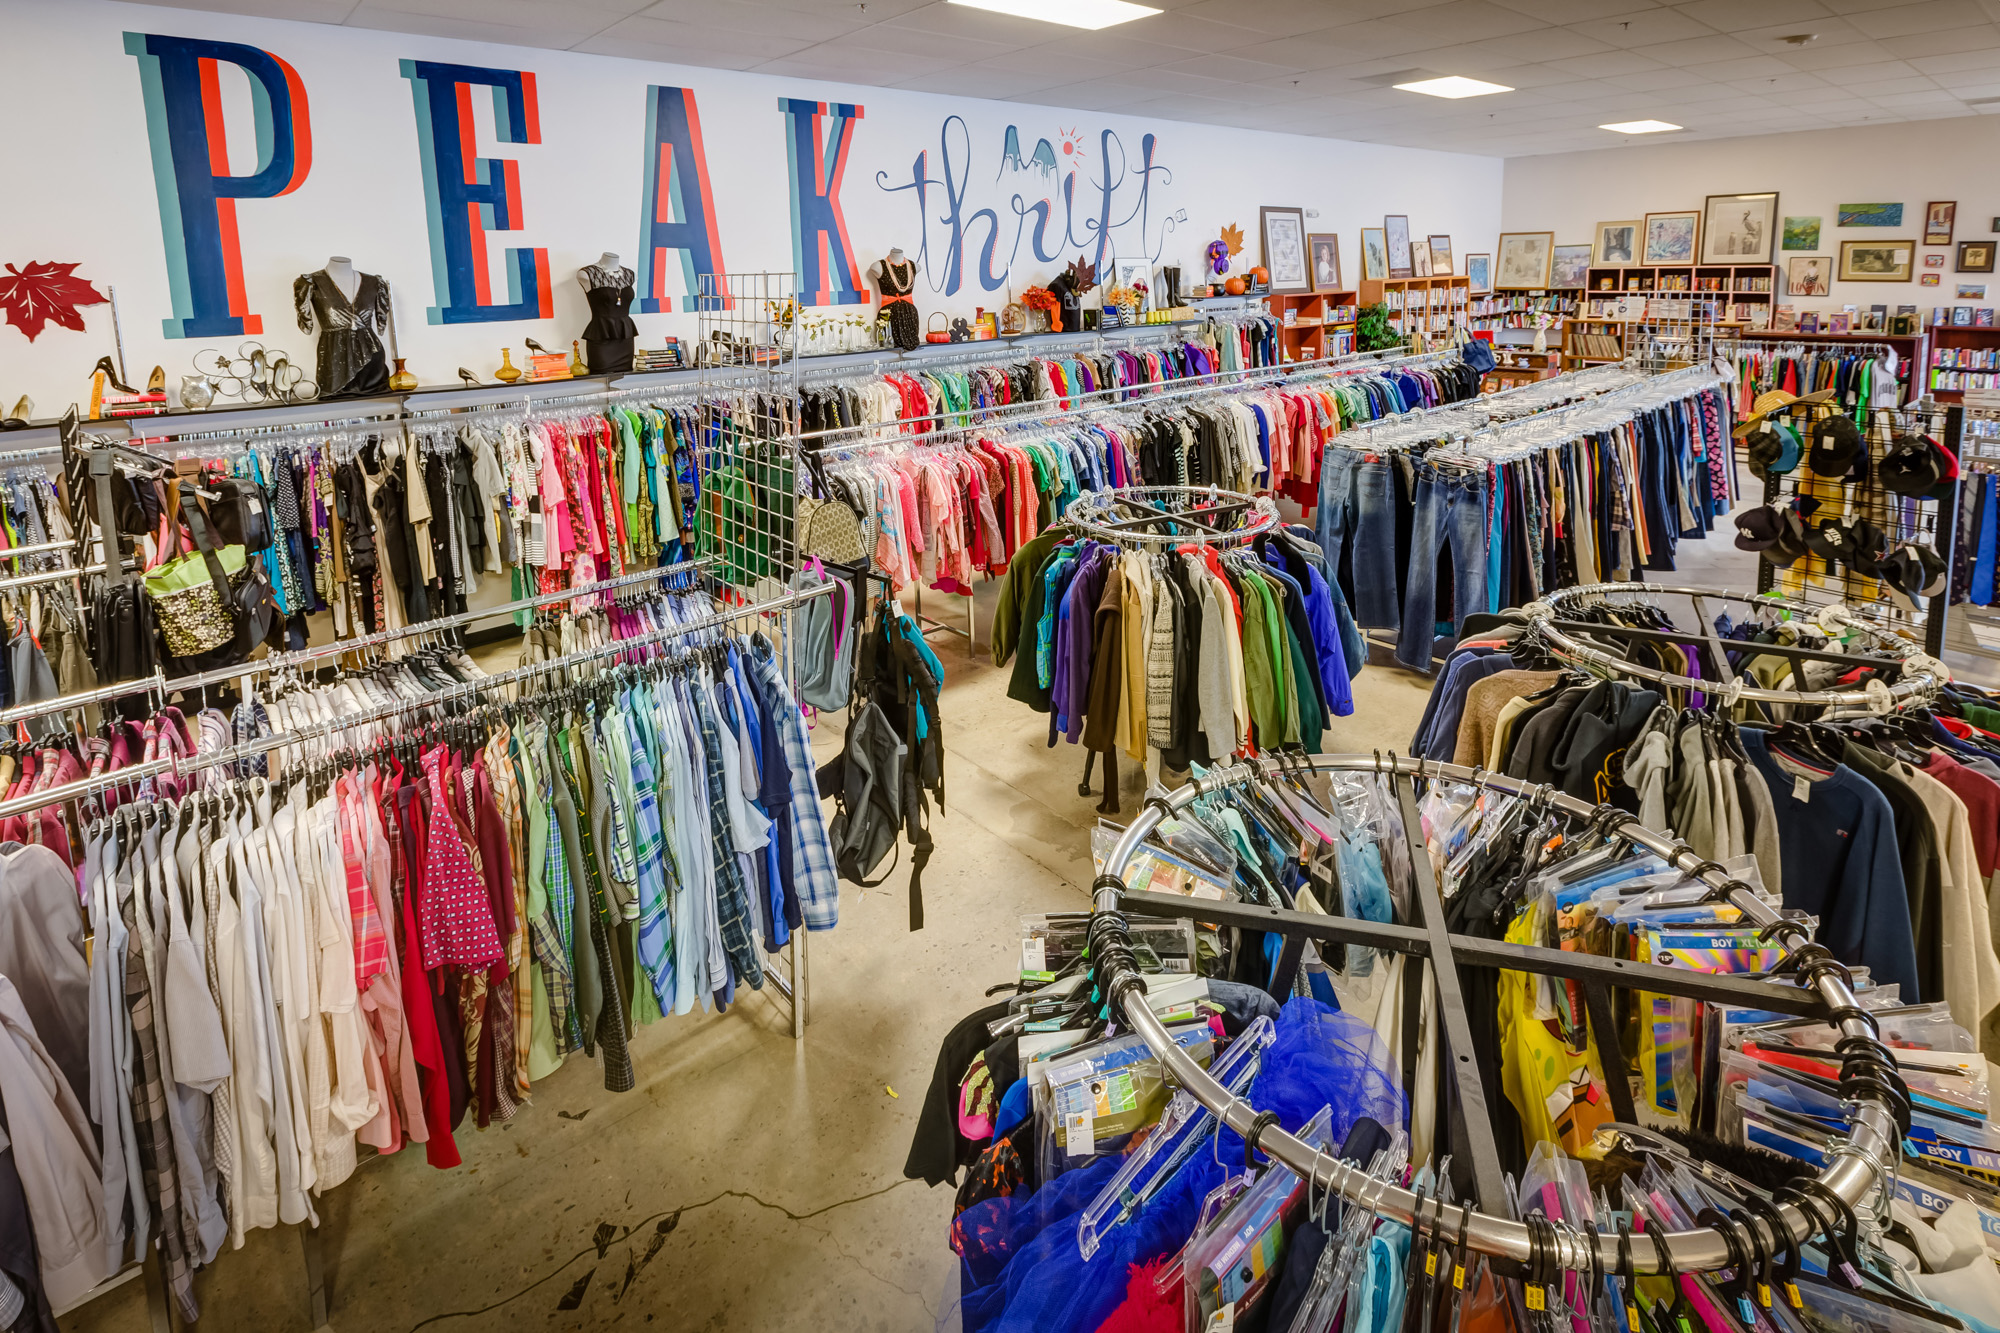 Interior of Peak Thrift with a high angle view of racks and shelves featuring colourful vintage clothing, accessories, and books.